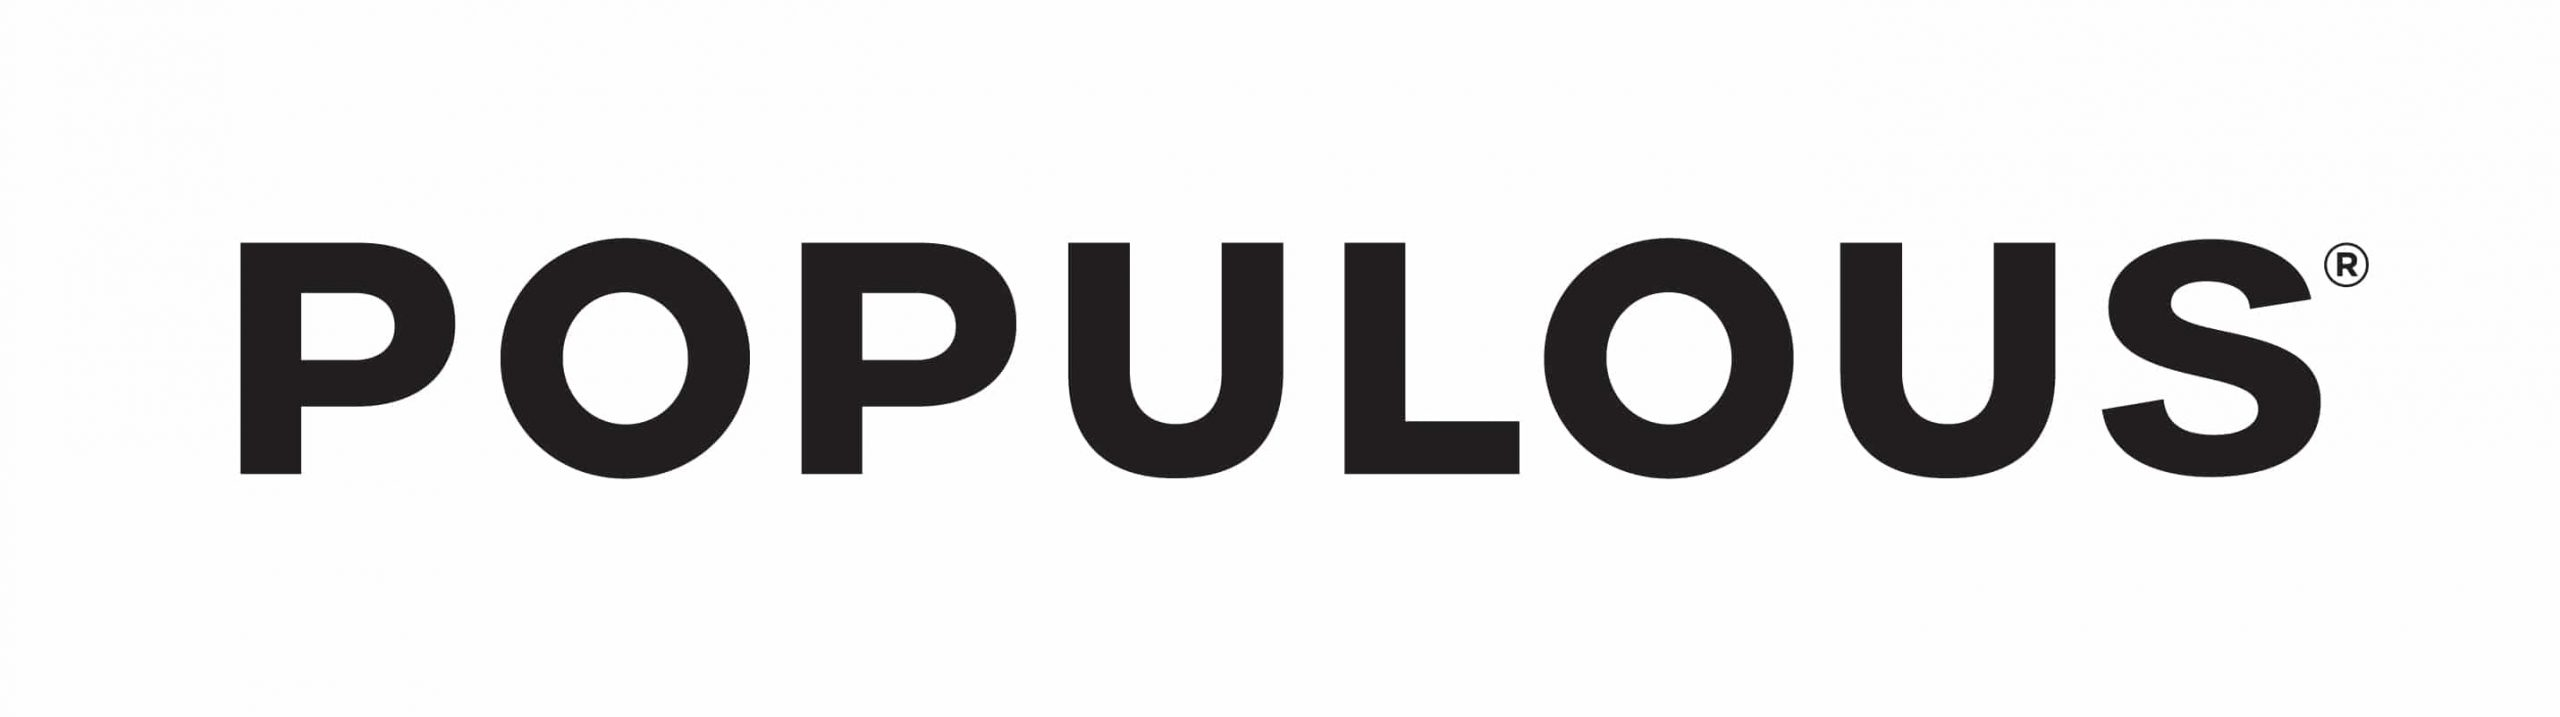 Populous_Primary-Logo_No-Tag_LETTERS-and-BLOCK